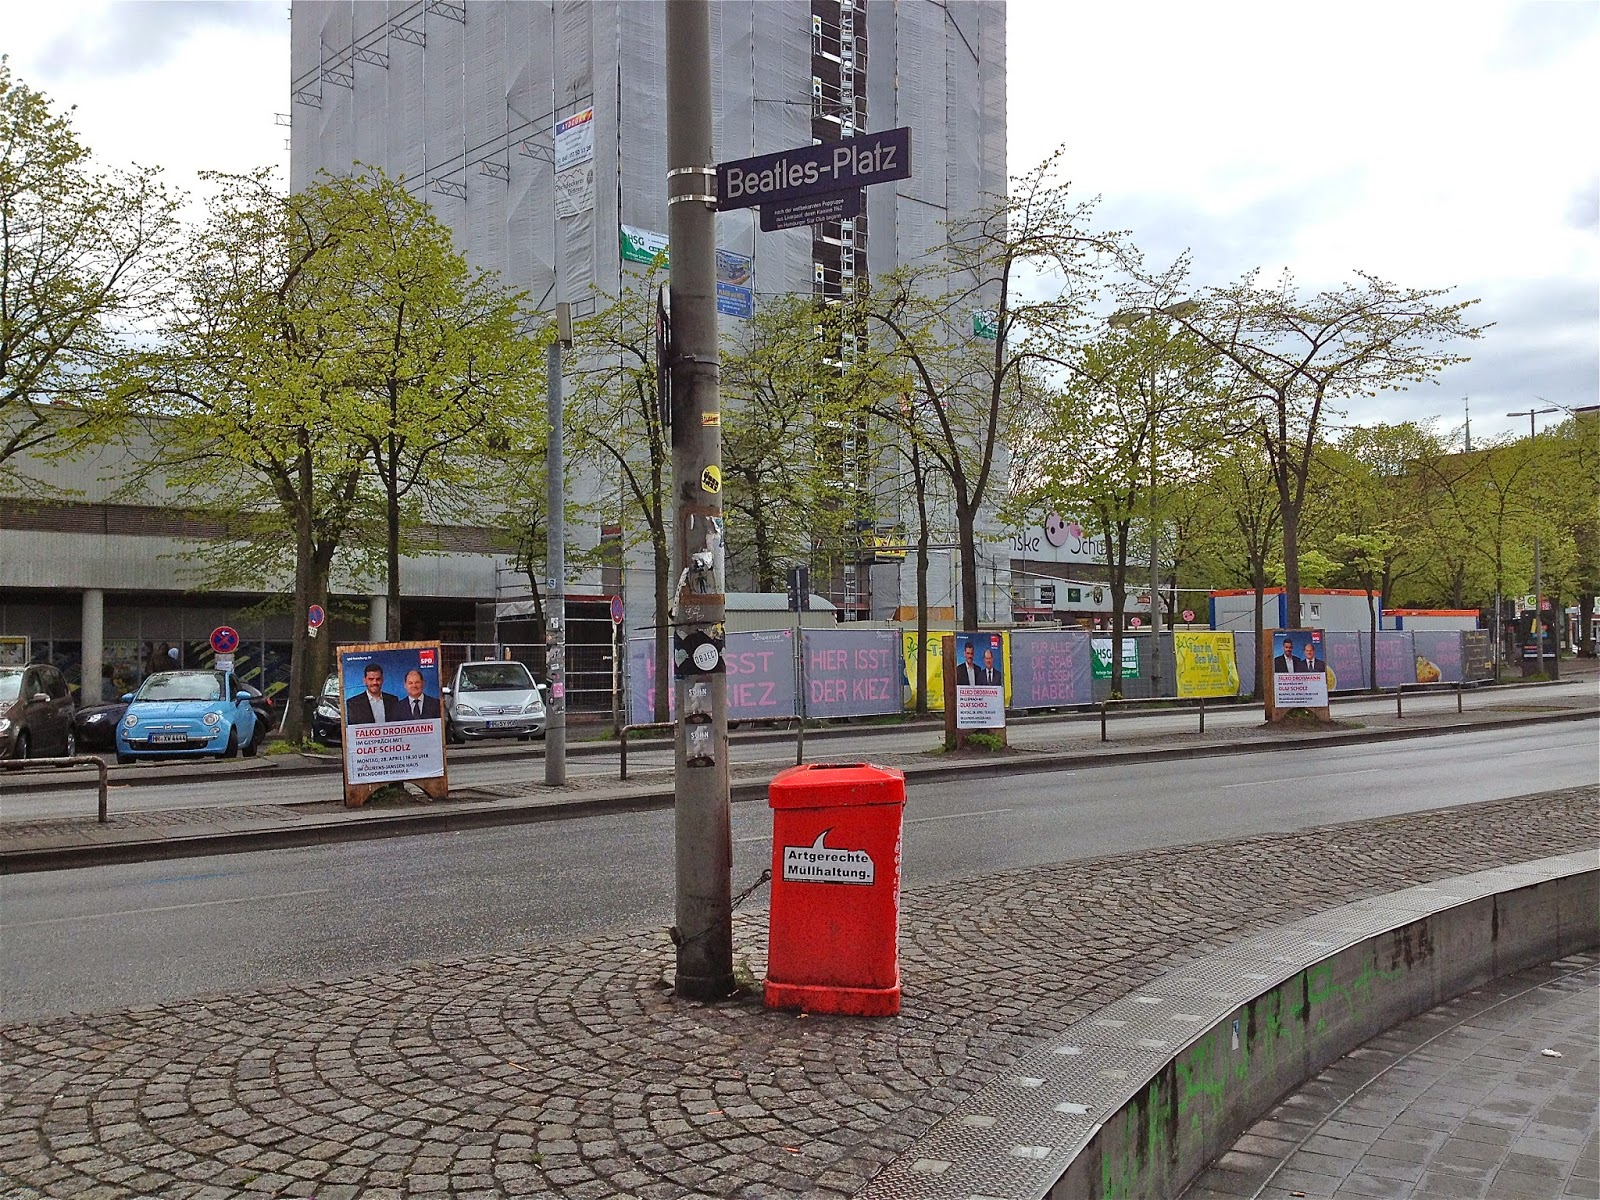 Picture of Beatles Platz in St Pauli, Hamburg.